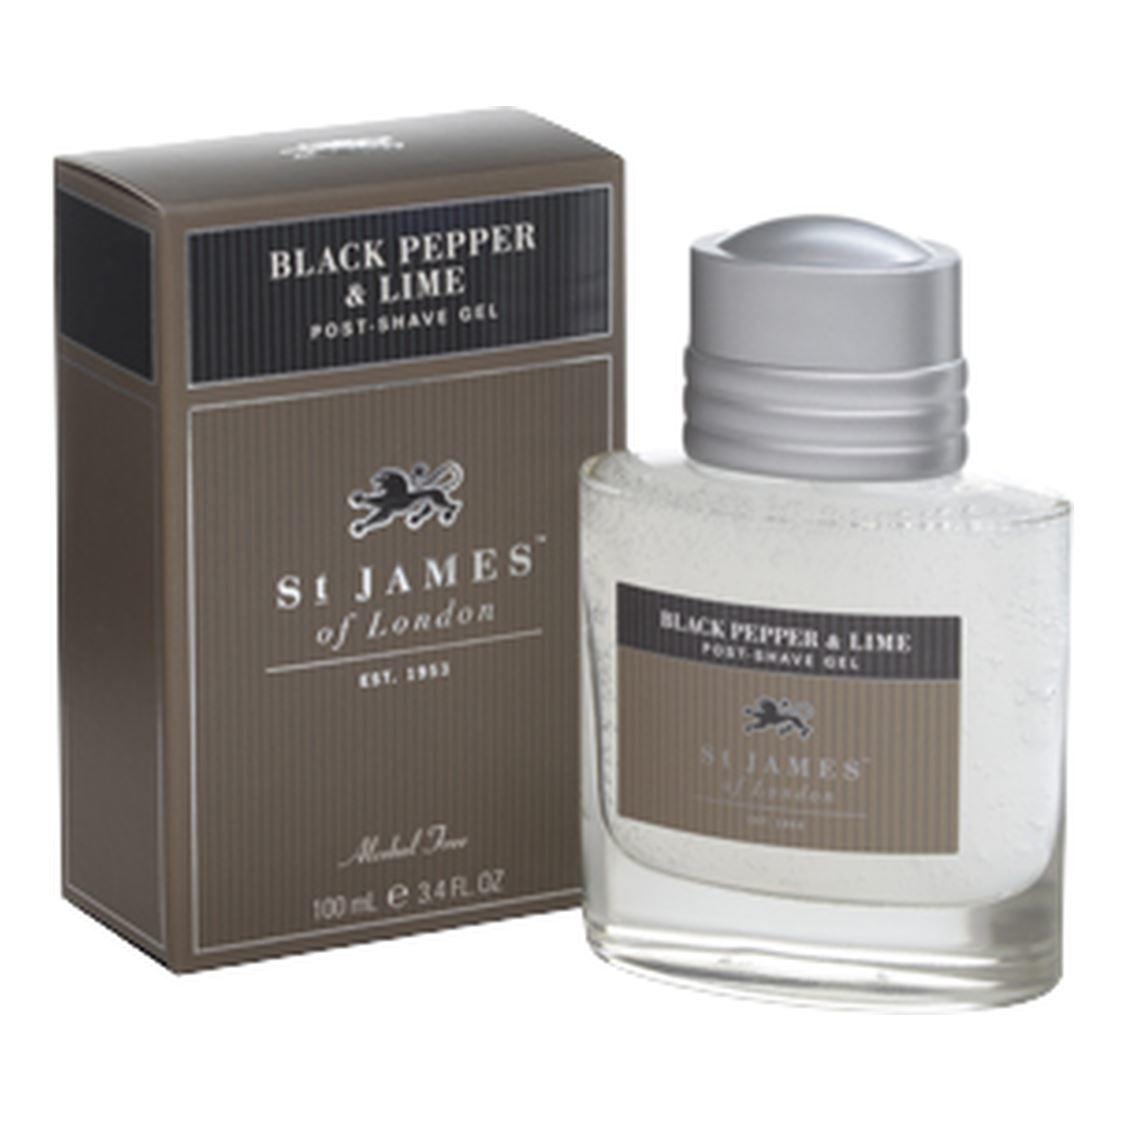 St James of London Black Pepper & Lime Large Post-Shave Gel